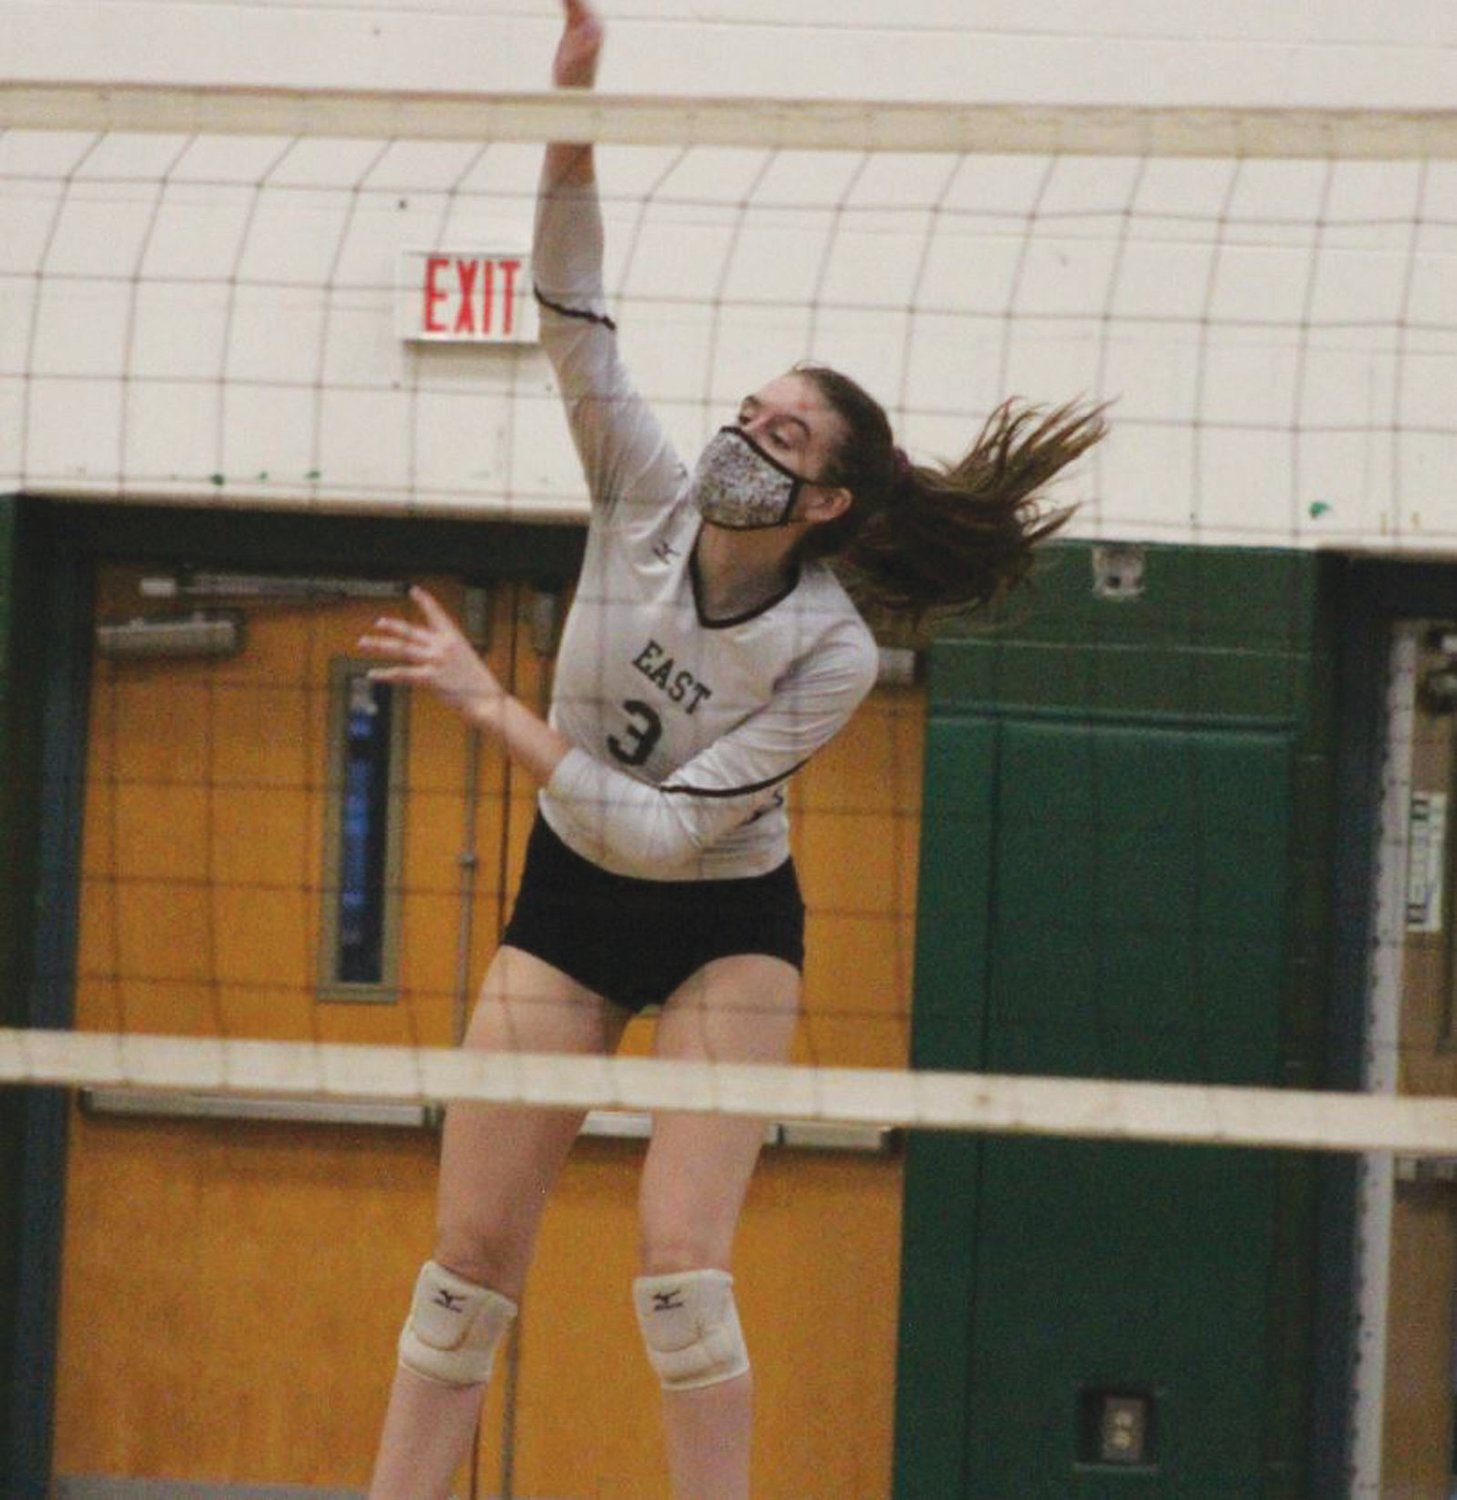 COMEBACK WIN: Cranston East's Lauren Milani jumps to spike the ball last week during the team's season opener against visiting Coventry. Despite dropping the first set to the Oakers, the Lady Bolts would surge to win three straight to complete the comeback victory.